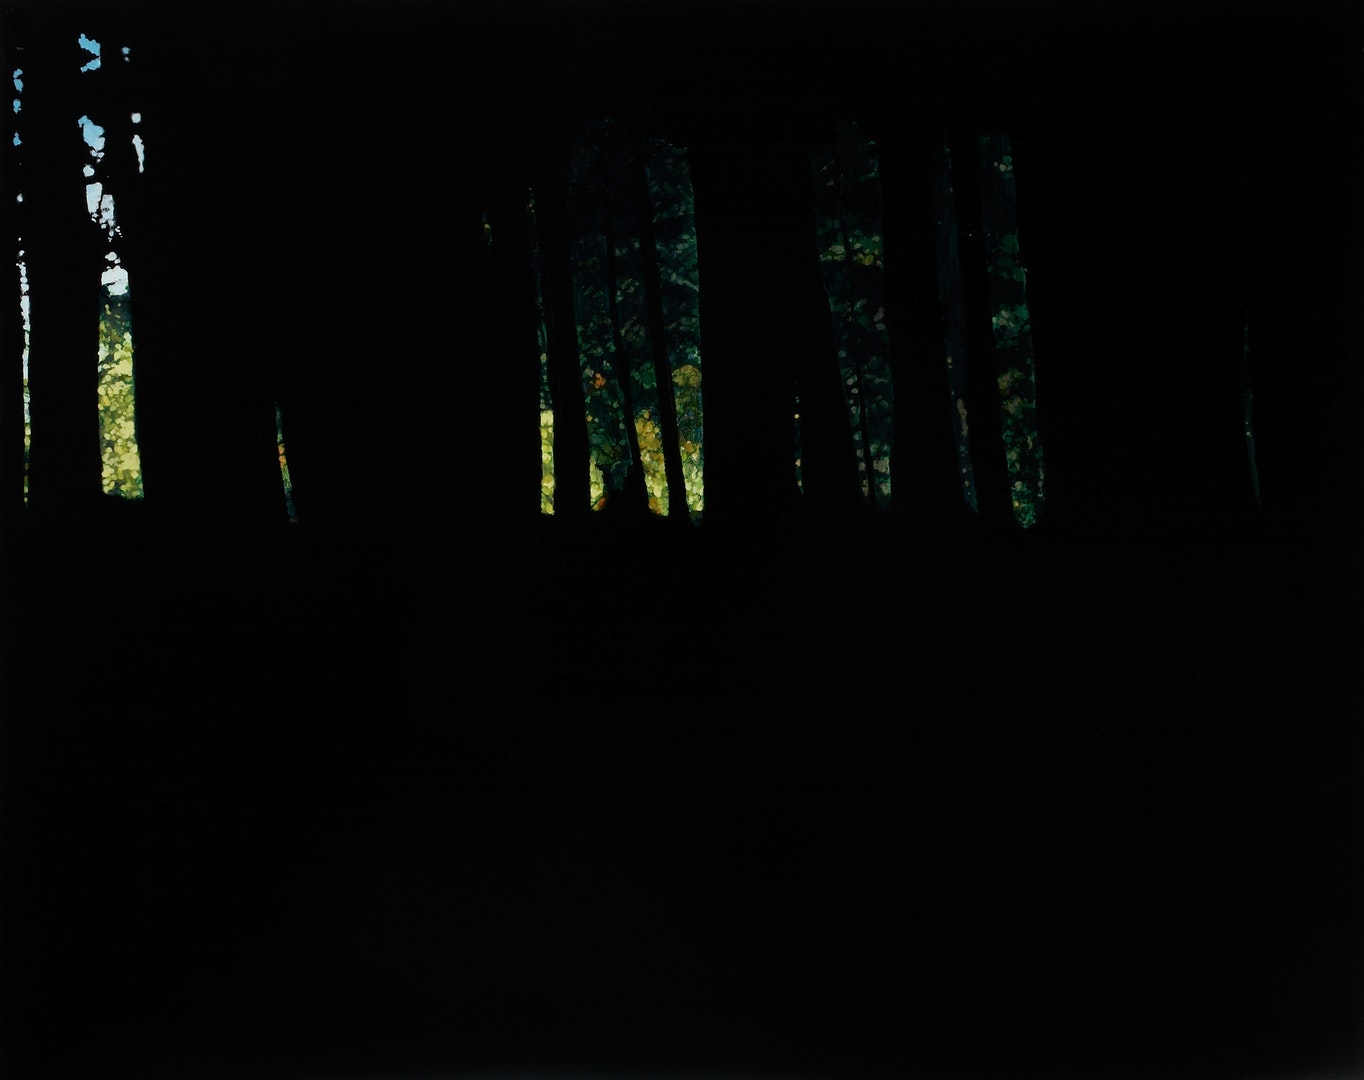 Rachel McDonnell  Dark Woods III  Oil and gesso on canvas, 80 x 100 x 4 cm  http://www.rachelmcdonnell.com